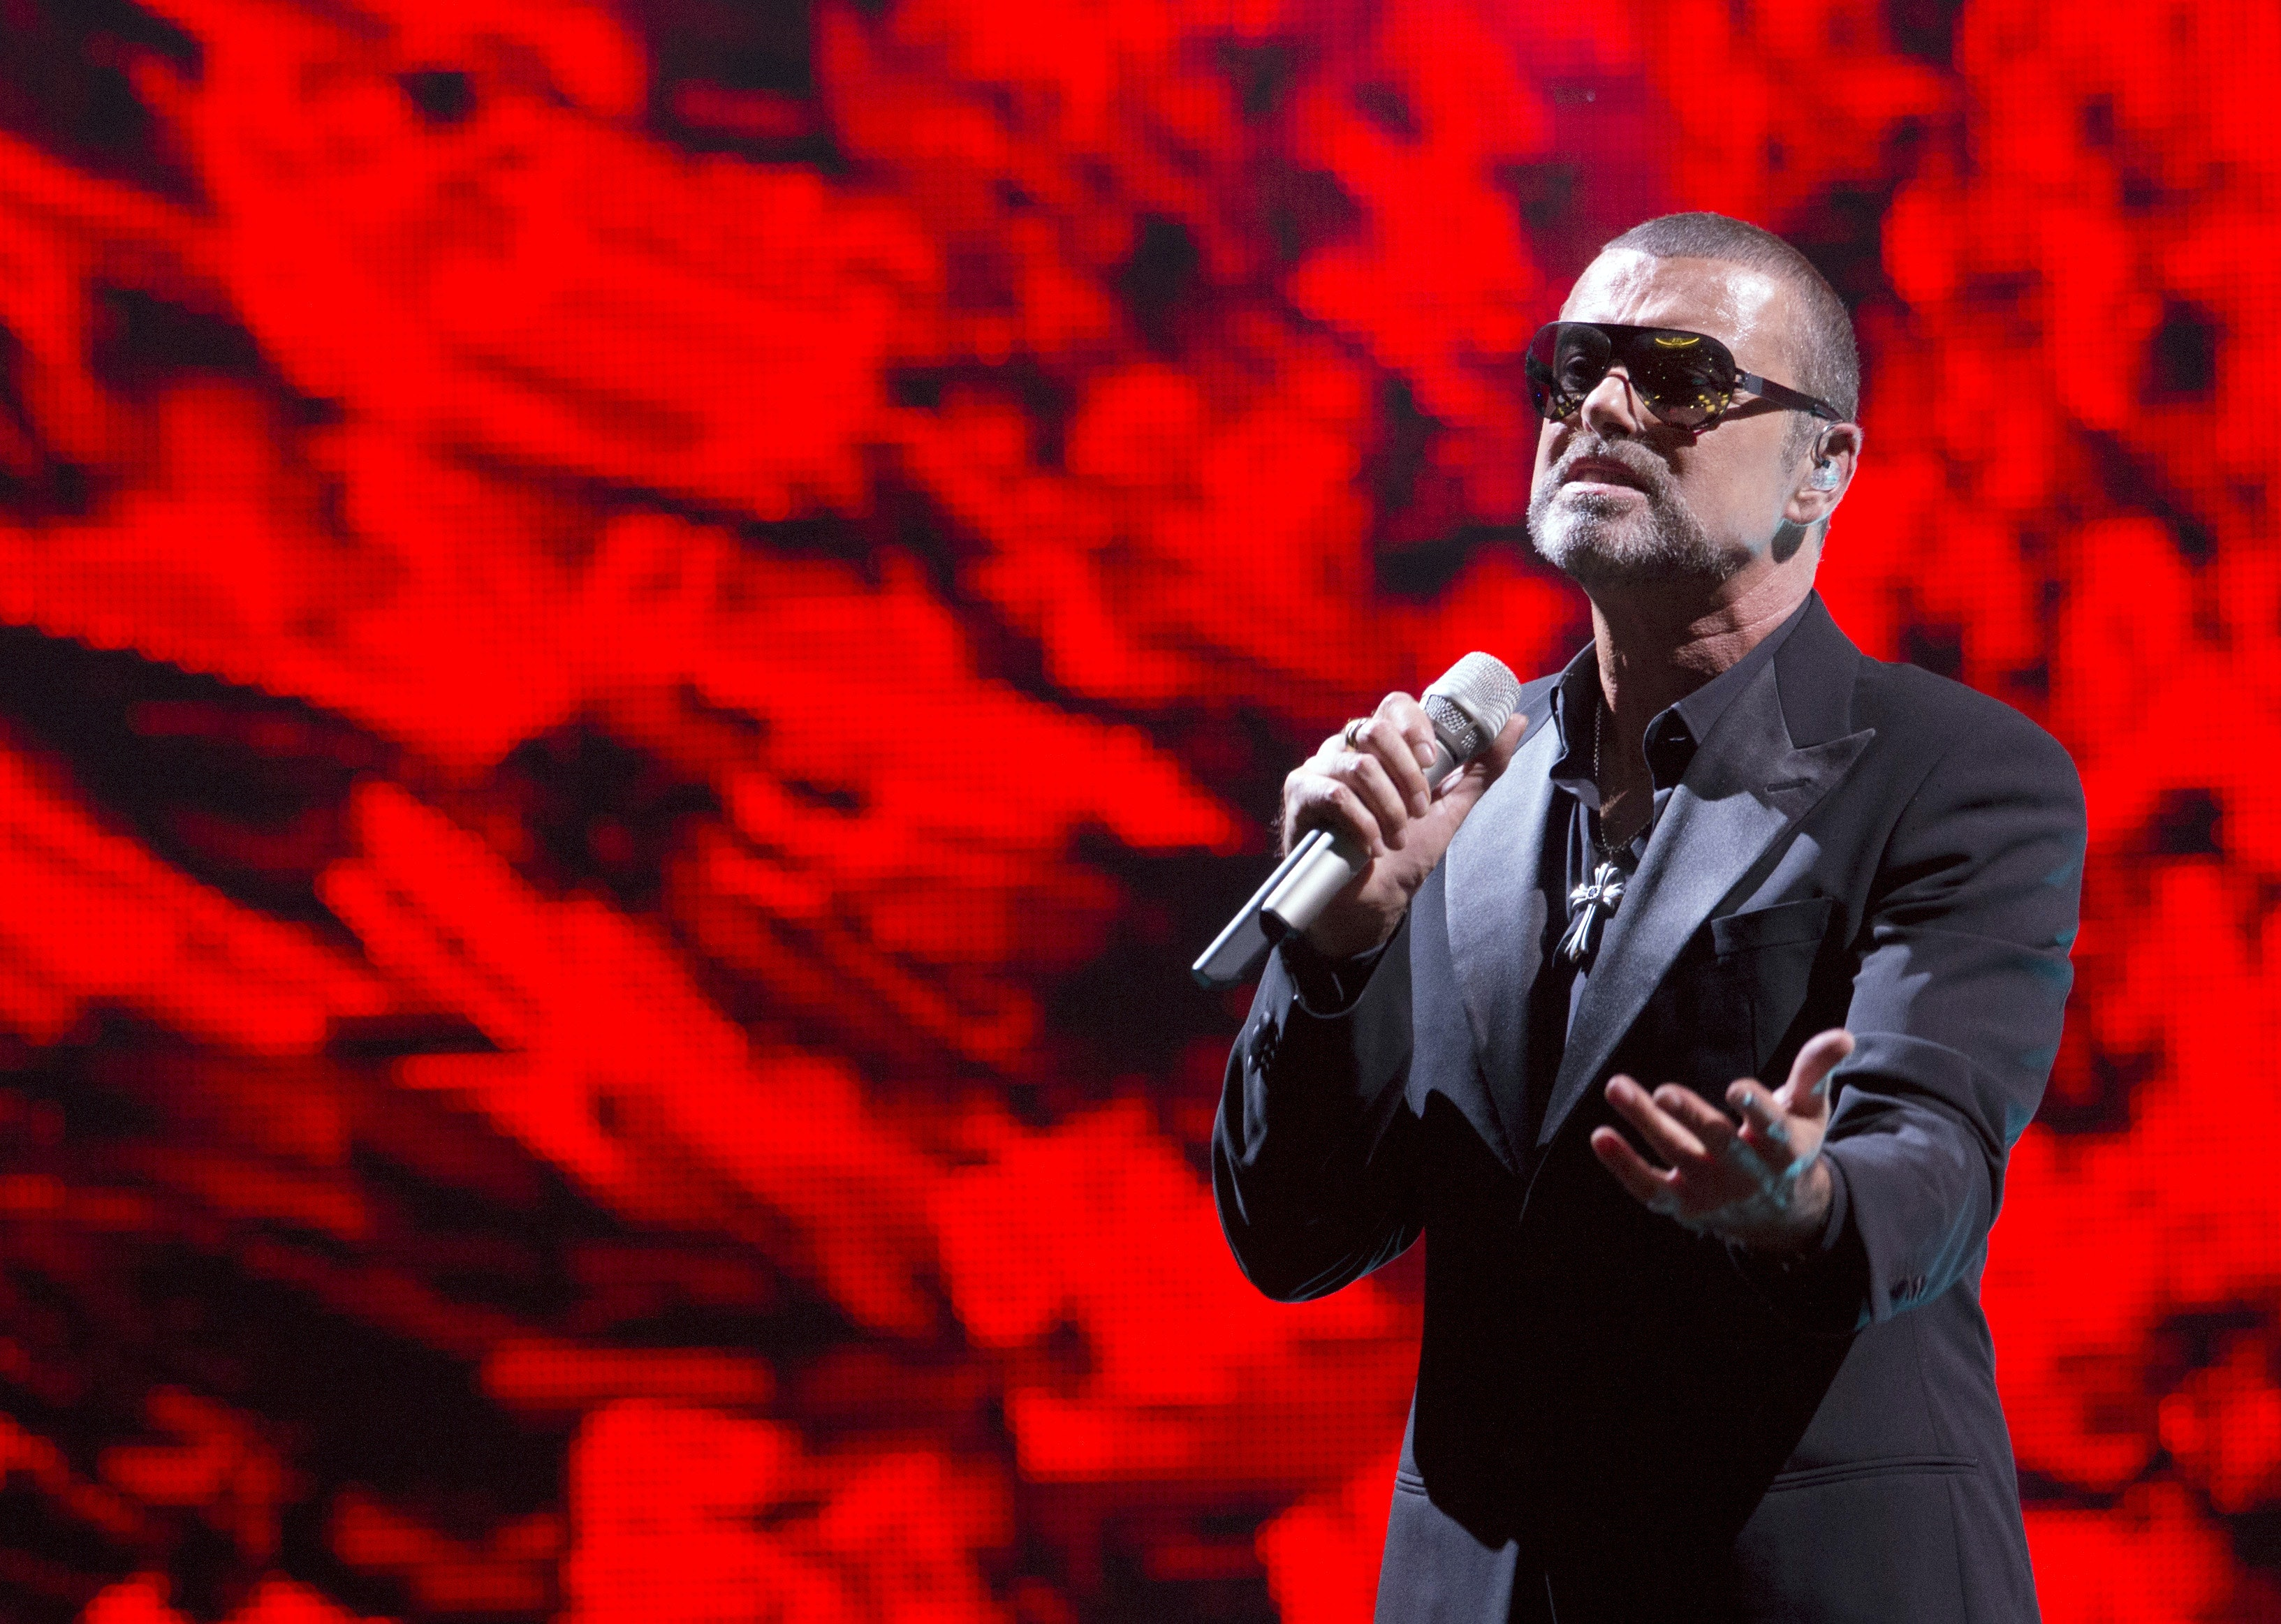 George Michael quietly battled heroin addiction before death